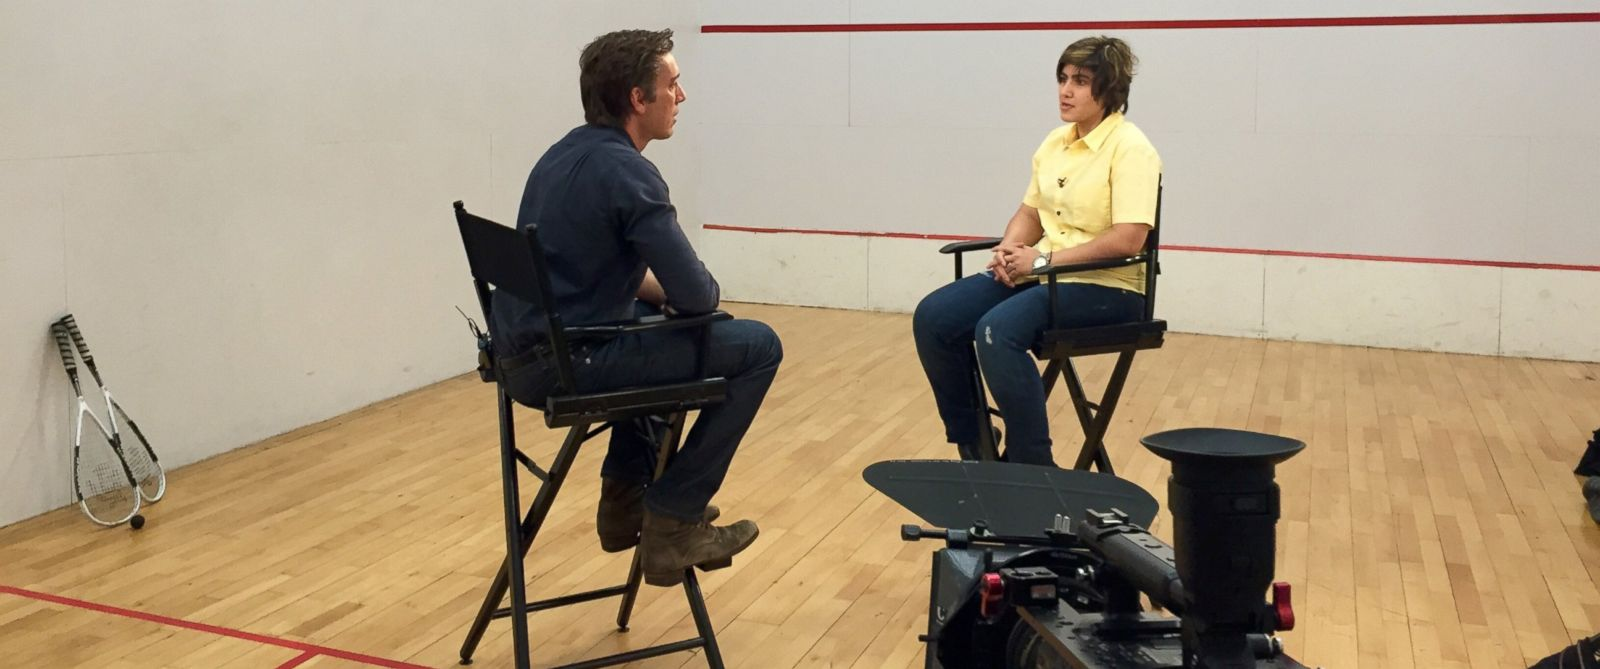 PHOTO: David Muir interviews Maria Toorpakai, who lived as a boy in a Taliban-controlled part of Pakistan so she could play squash.